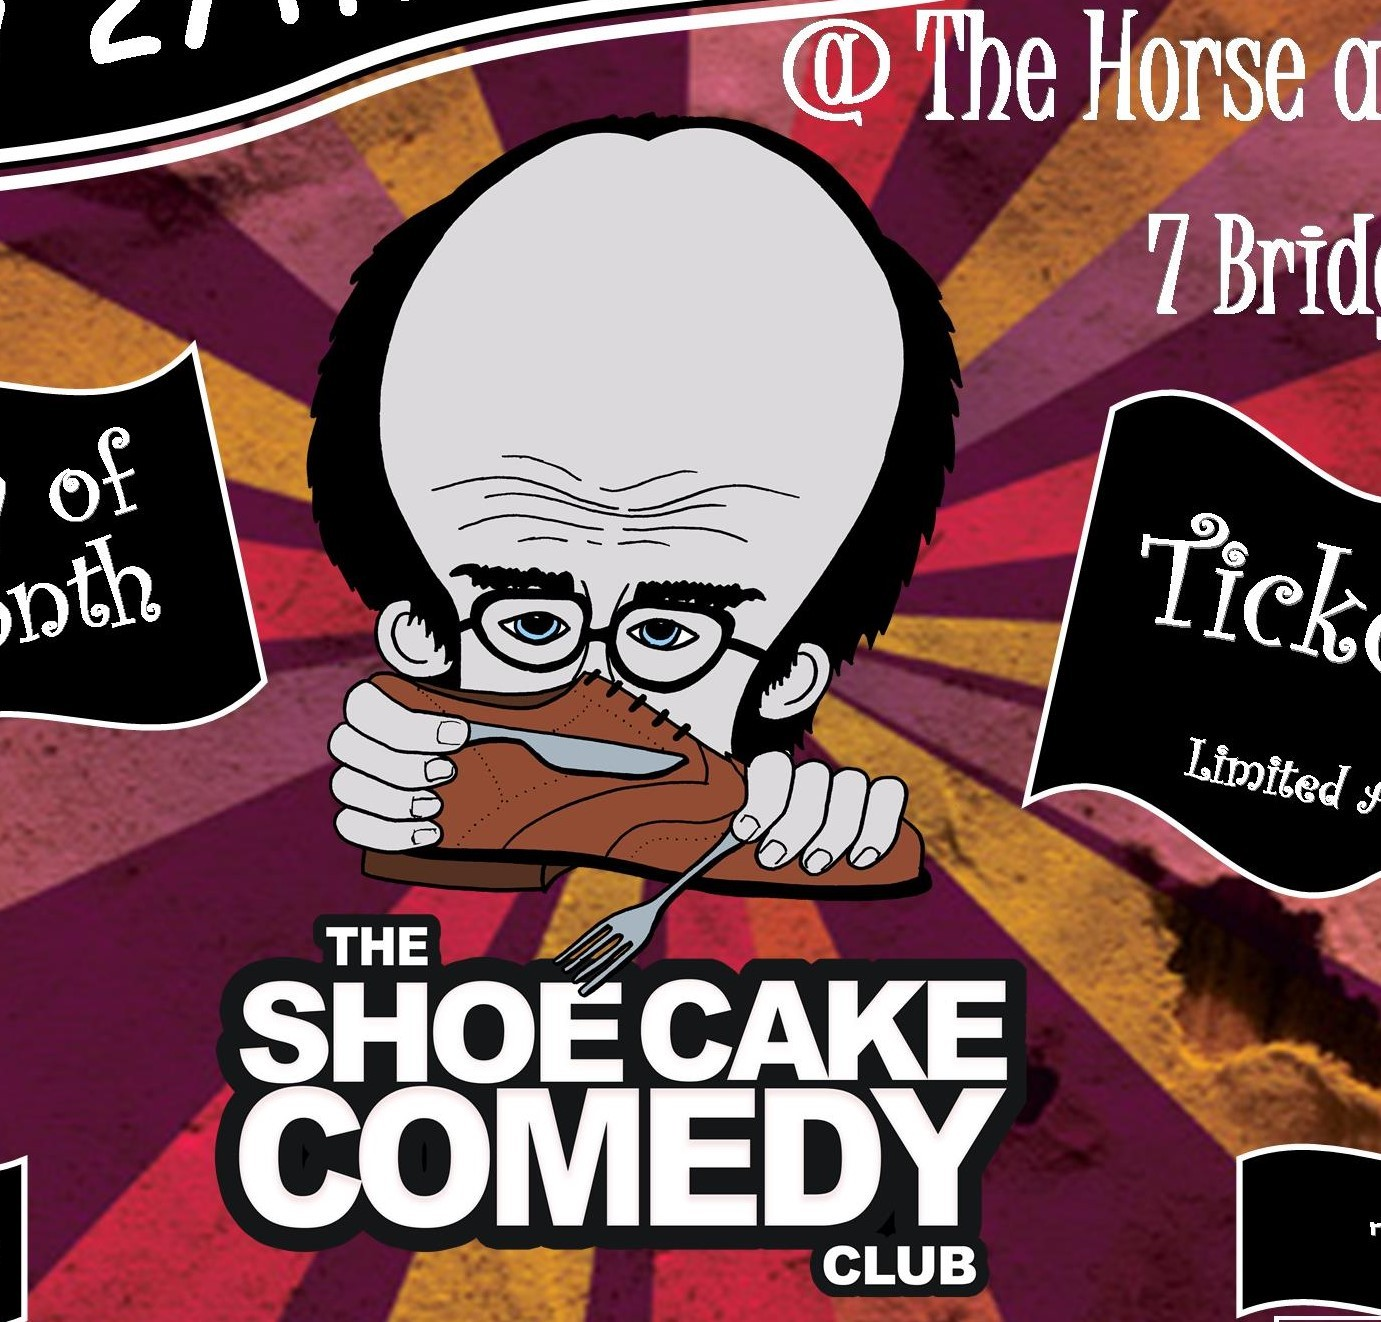 Shoe Cake Comedy Club nights at Otley have ended